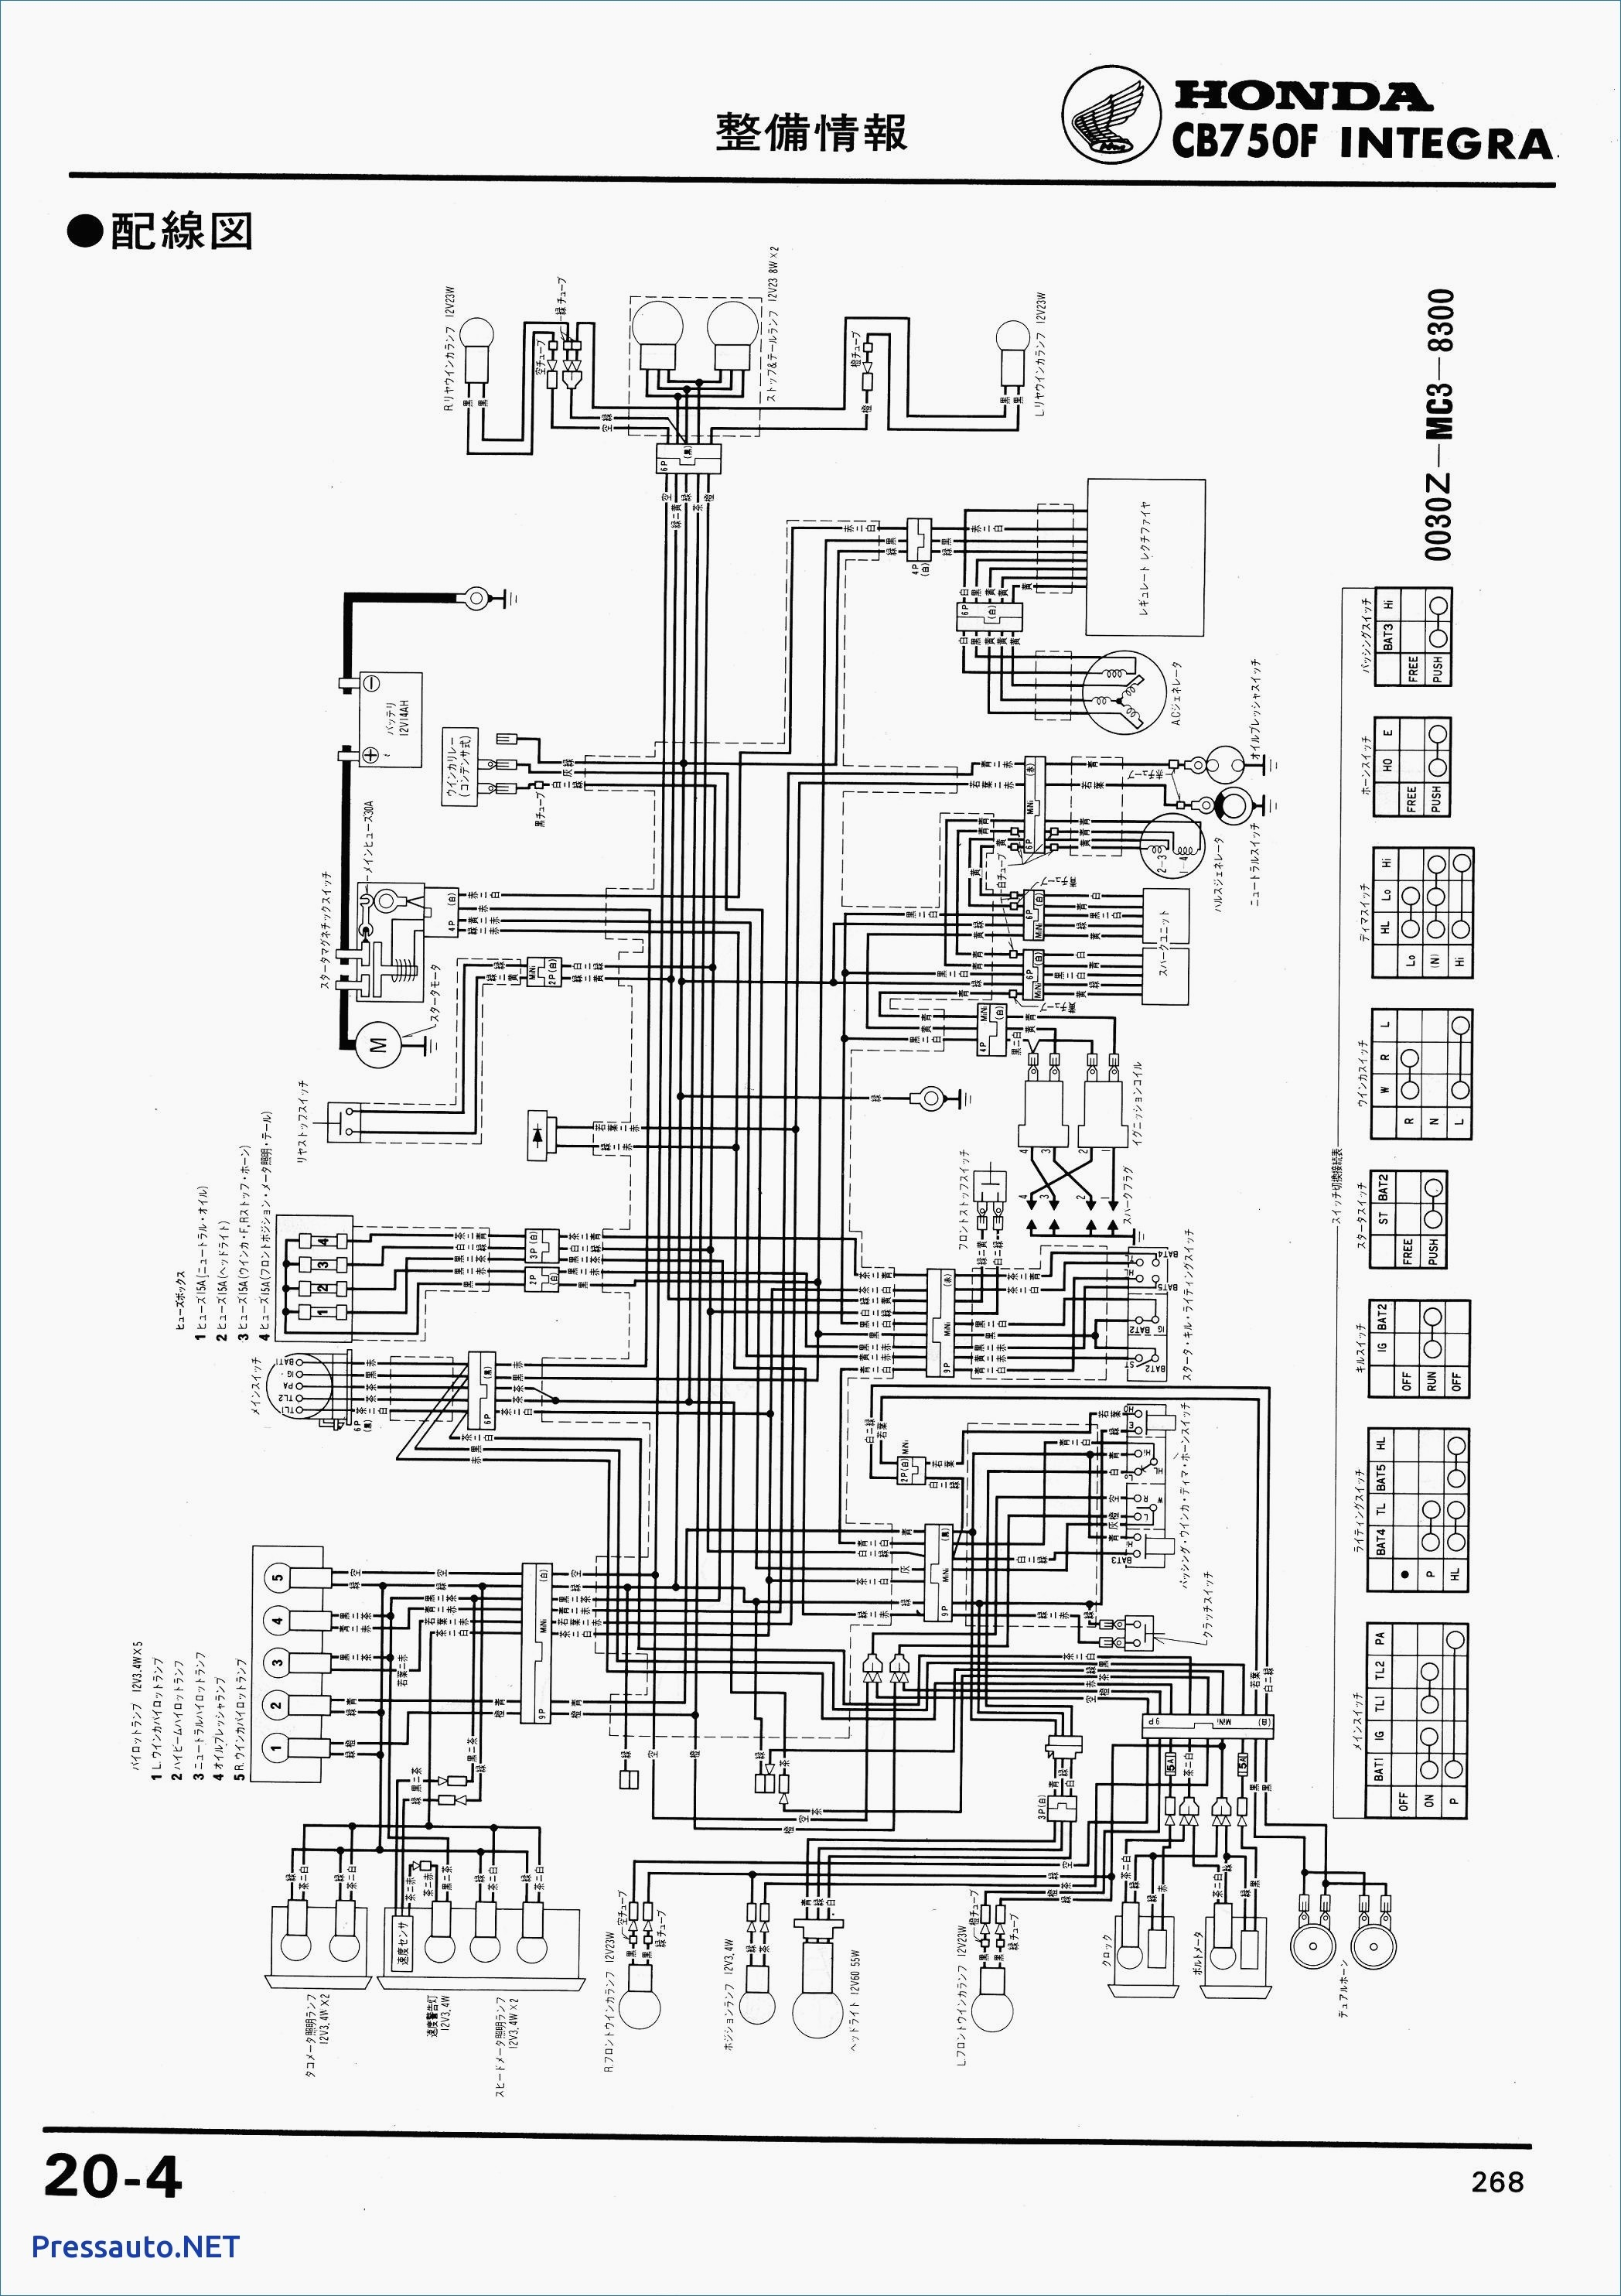 Light Curtain Wiring Schematic